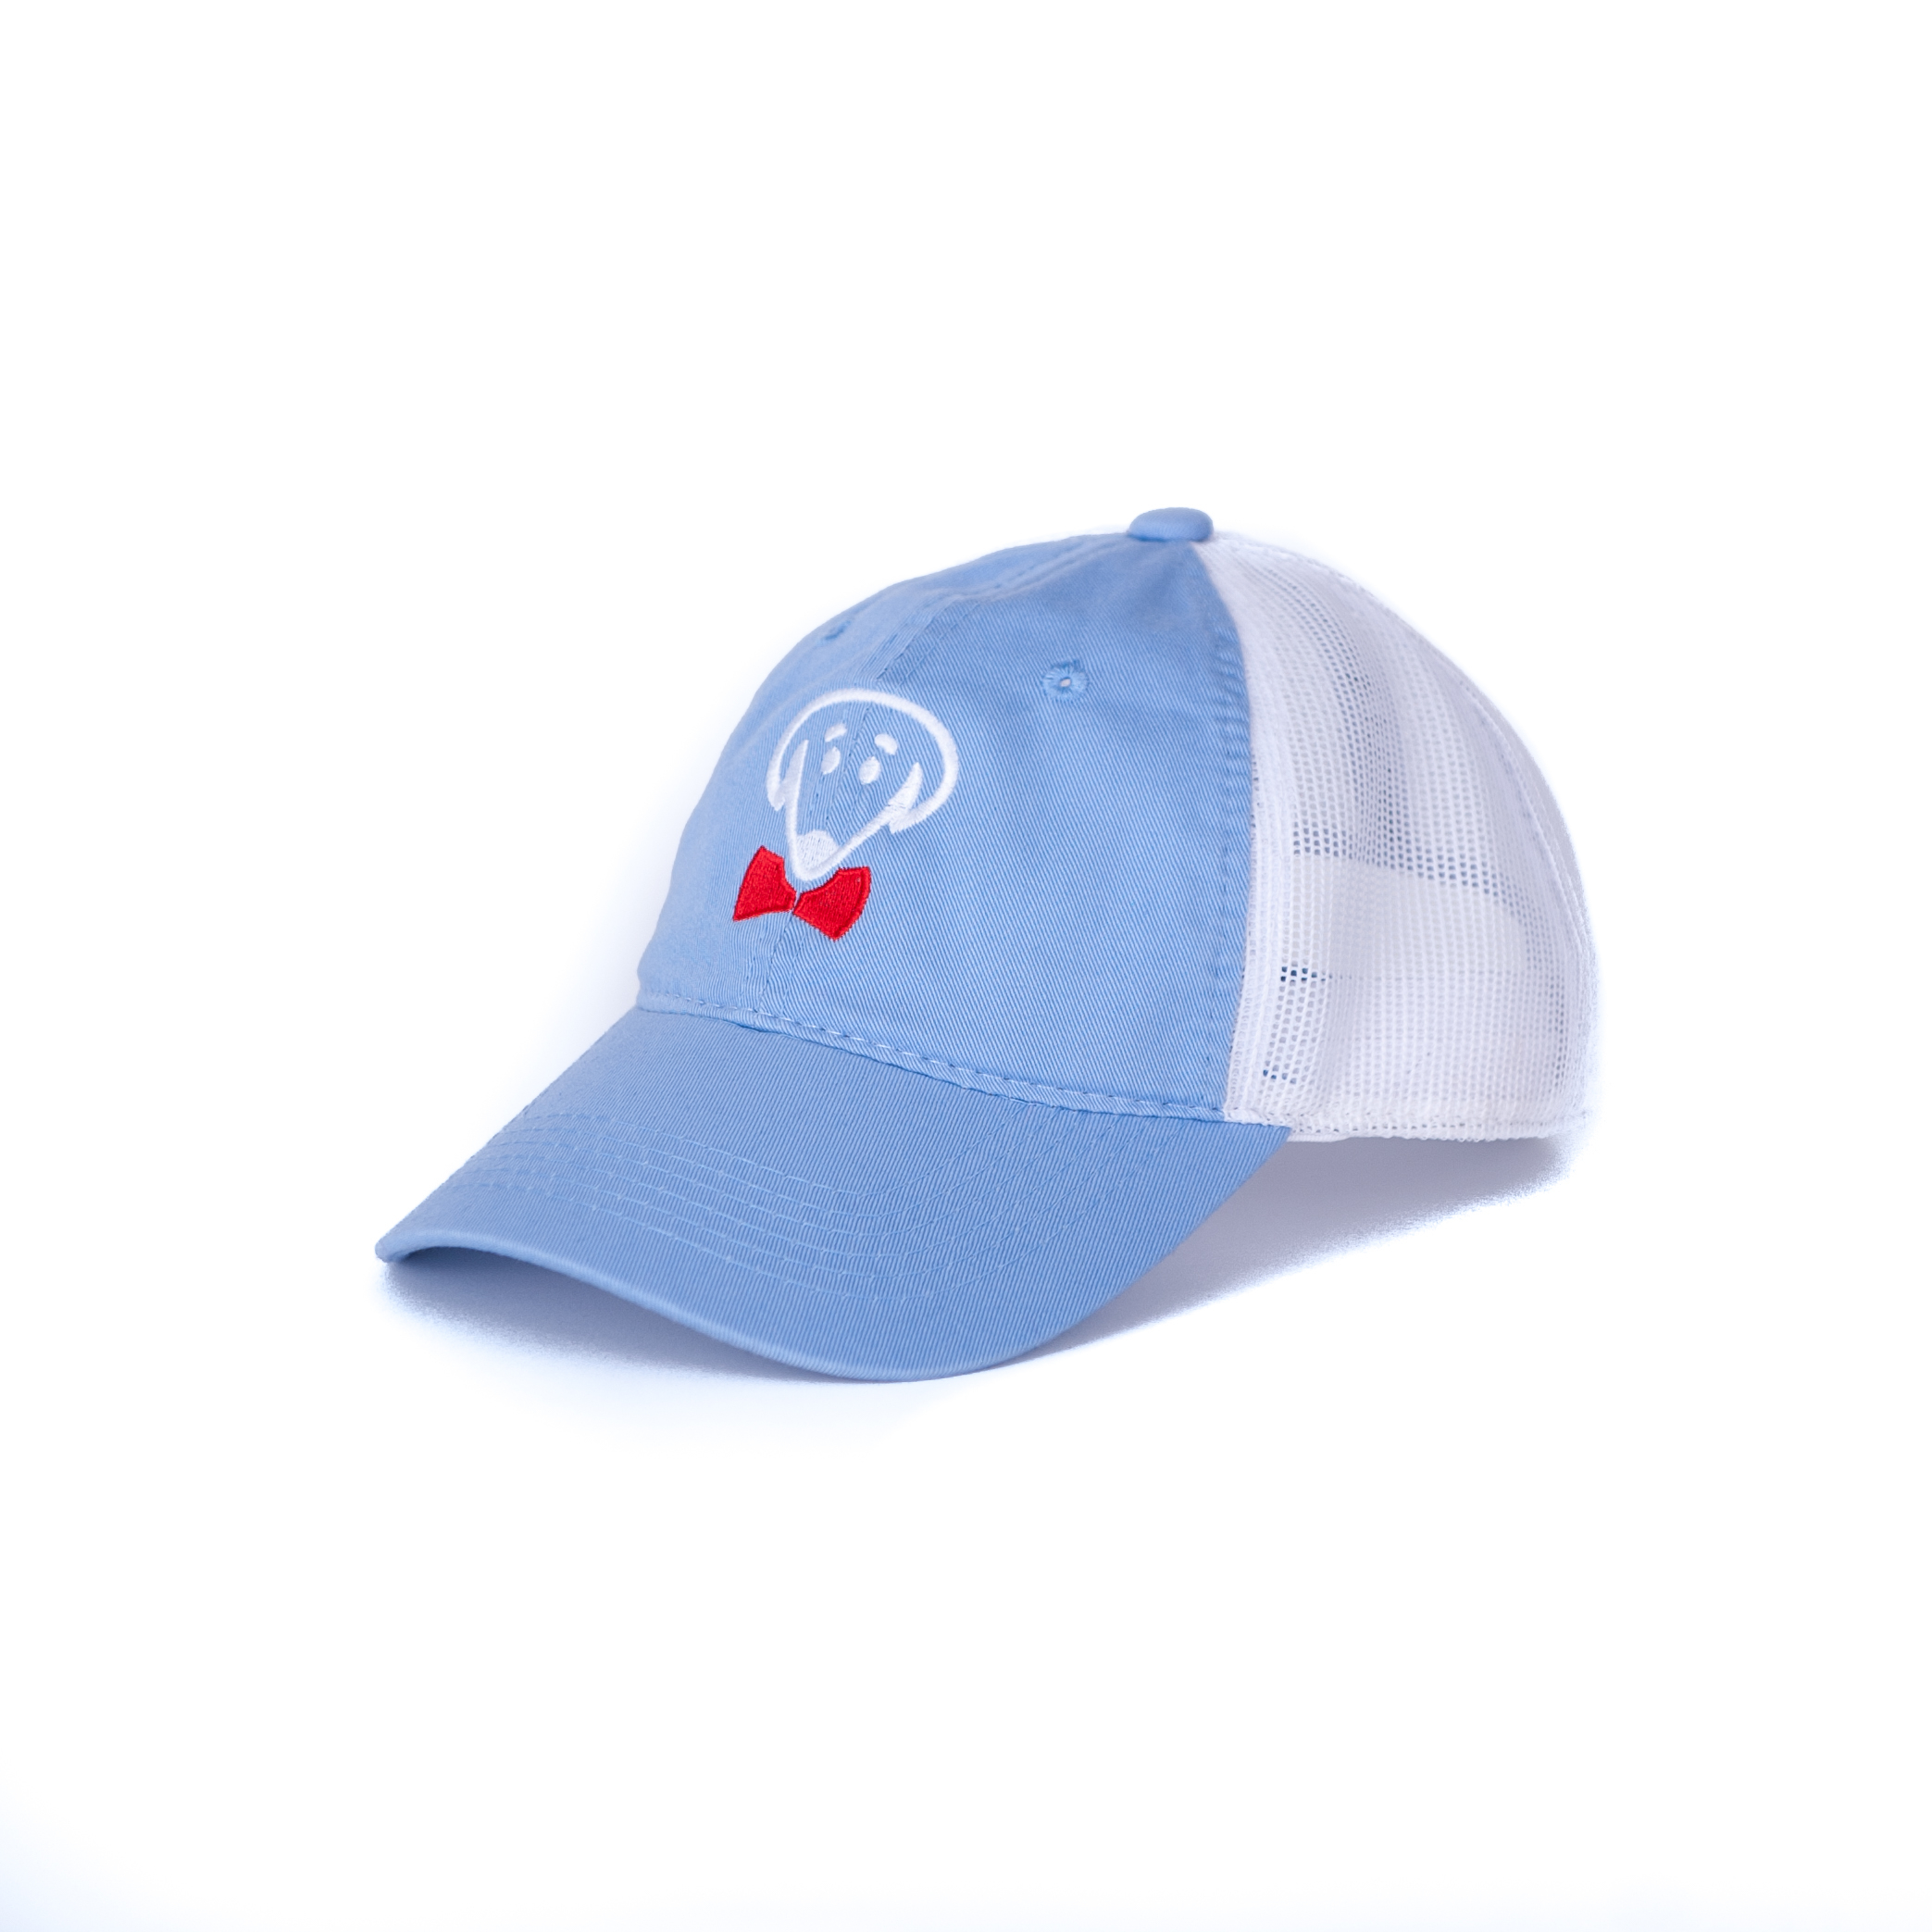 Bow Ties Dog Logo Baseball Hat-Light Blue and White